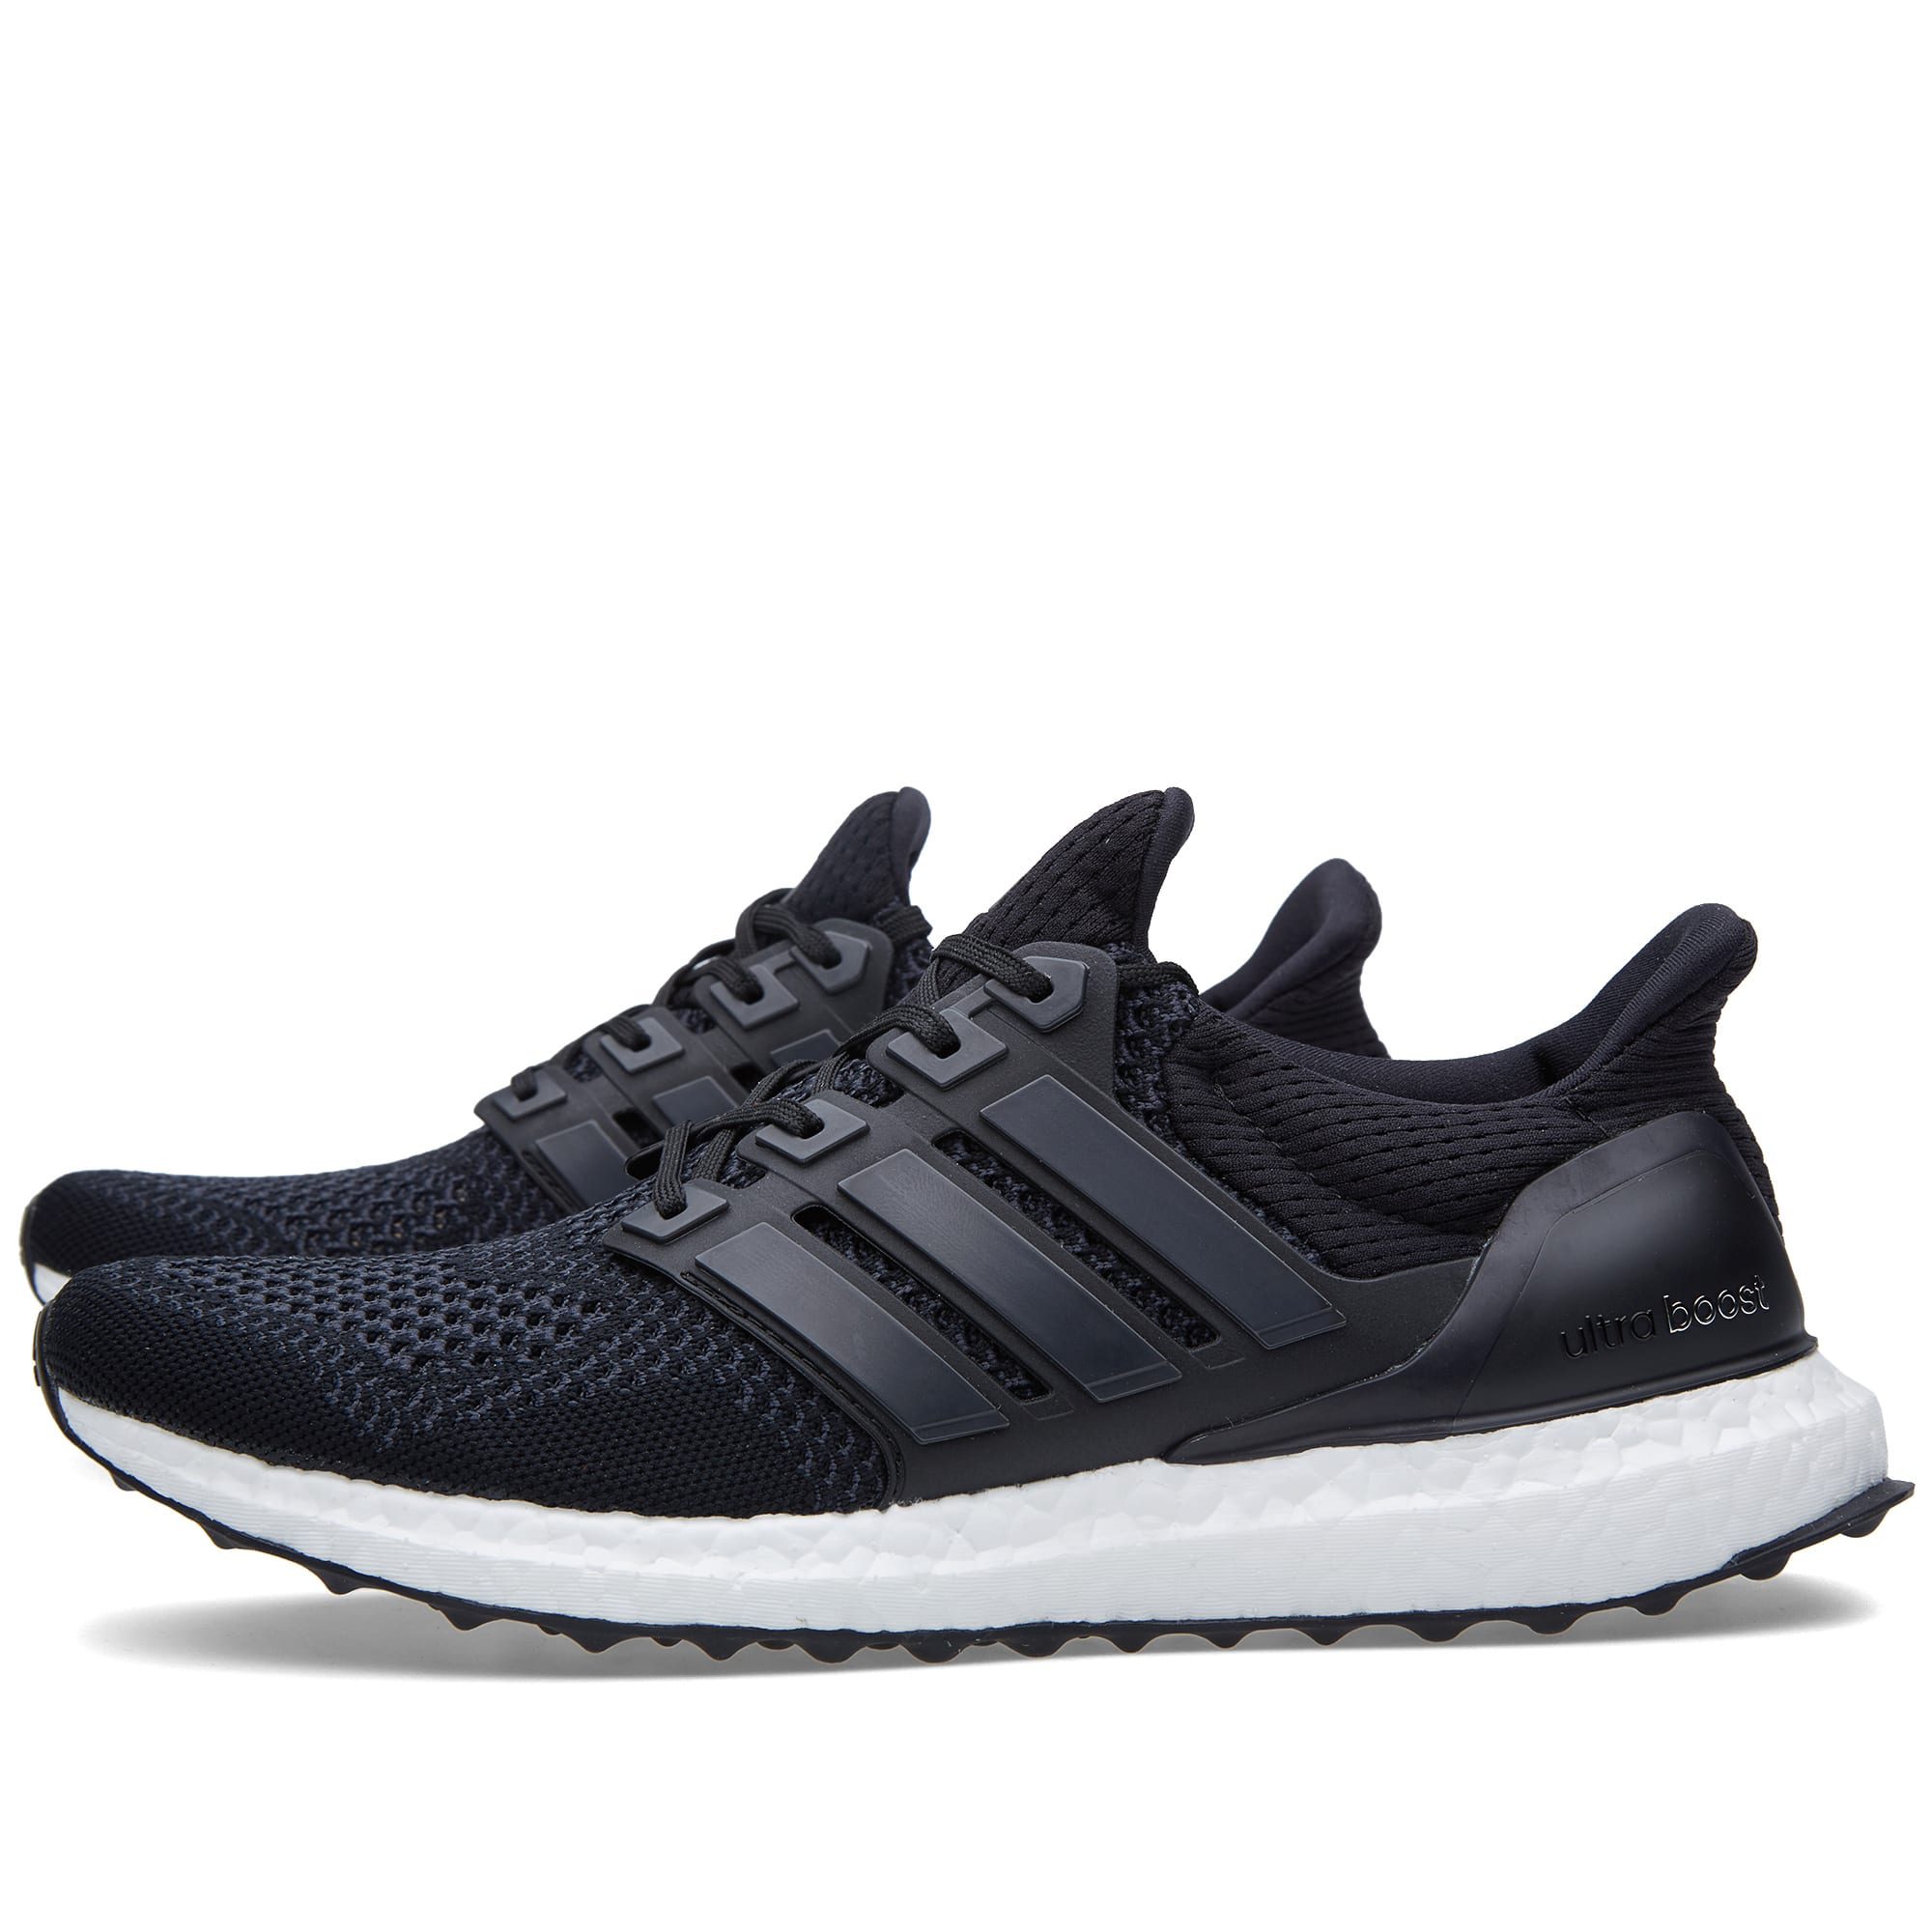 tan adidas ultra boost Sale | Up to OFF51% Discounts